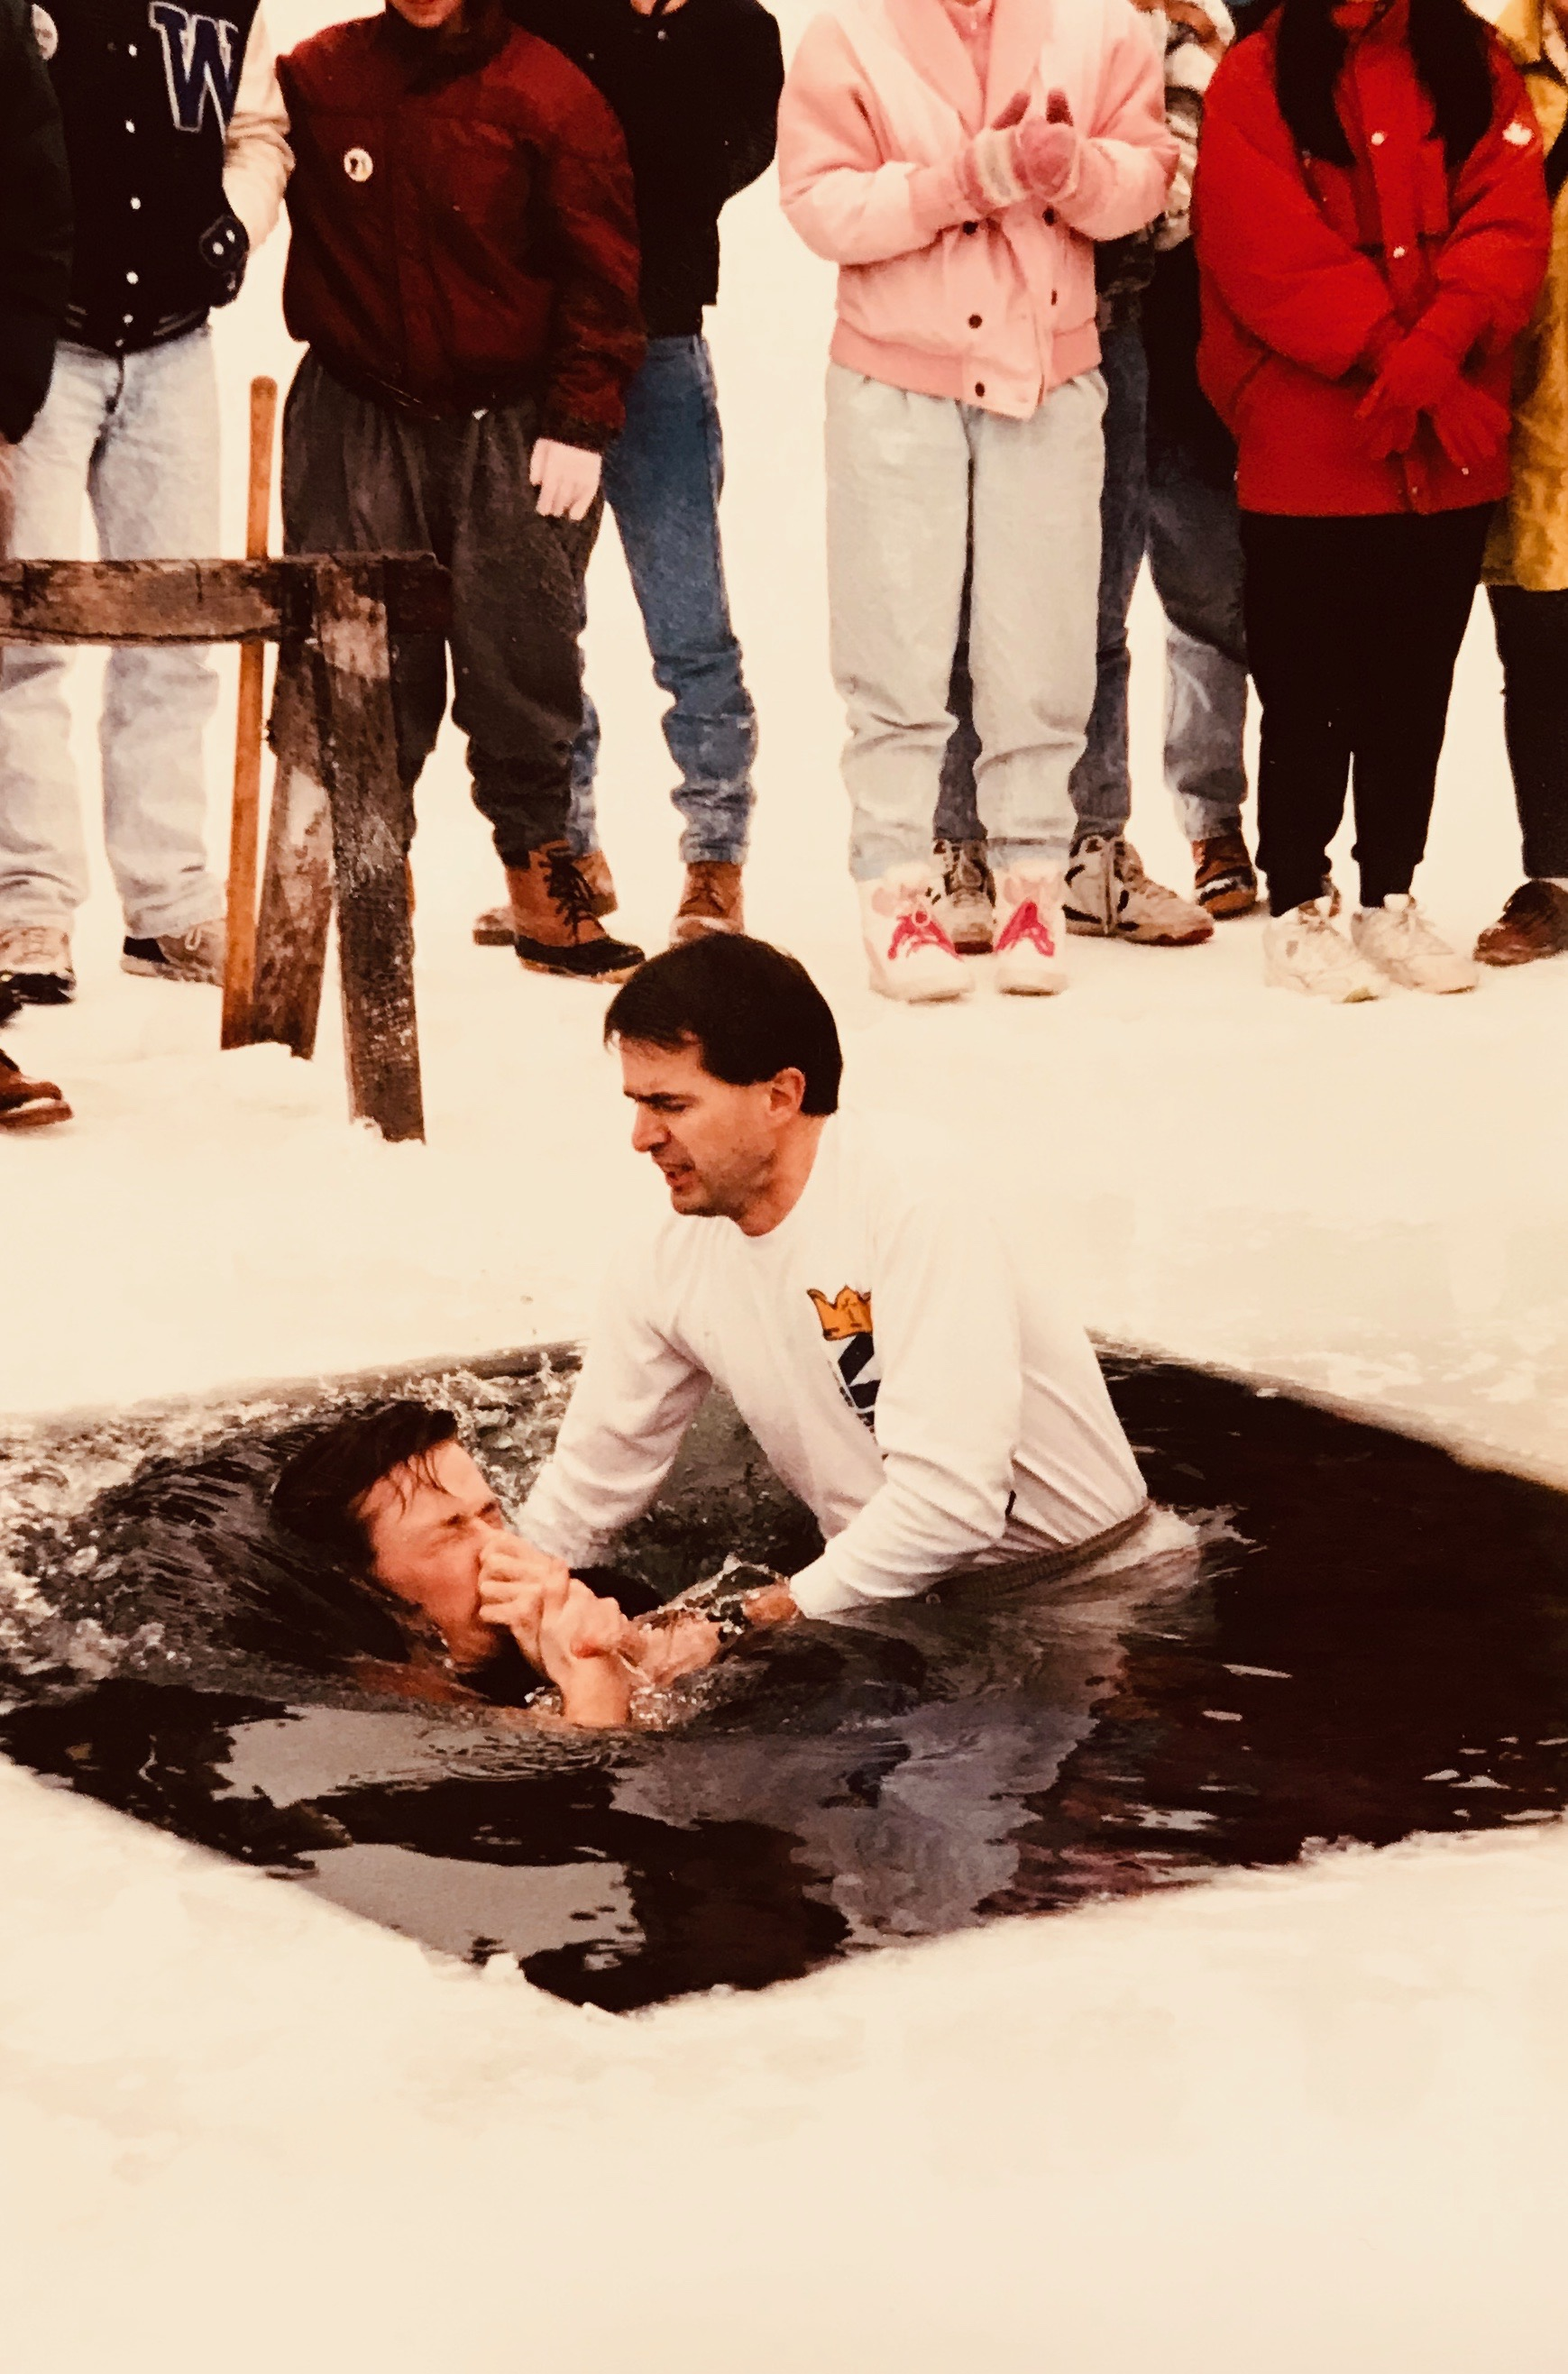 dean-trune-baptism-winter-retreat-1992.jpg